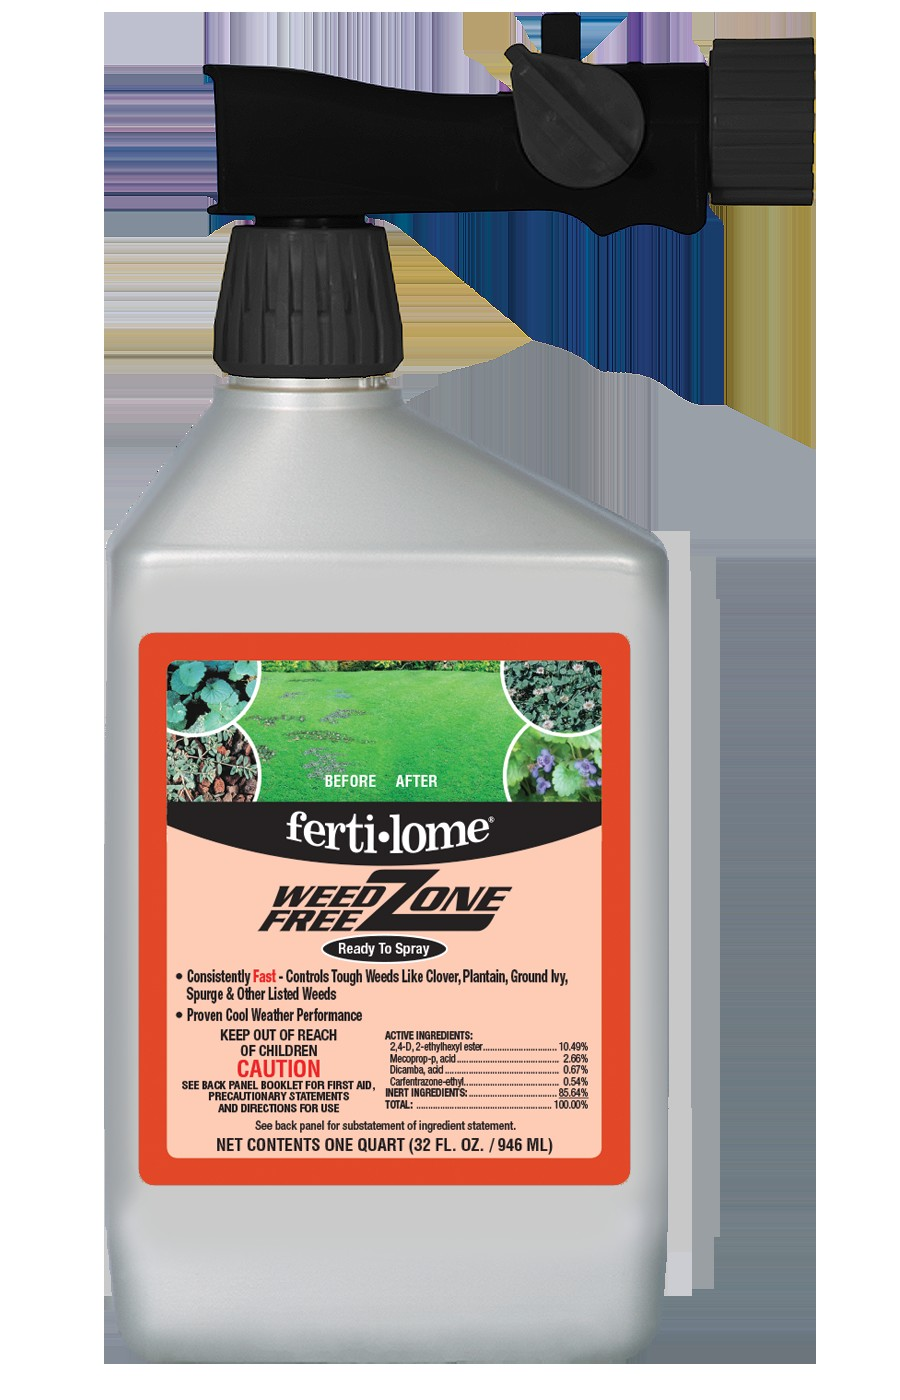 product label 483 kb a weed free zone